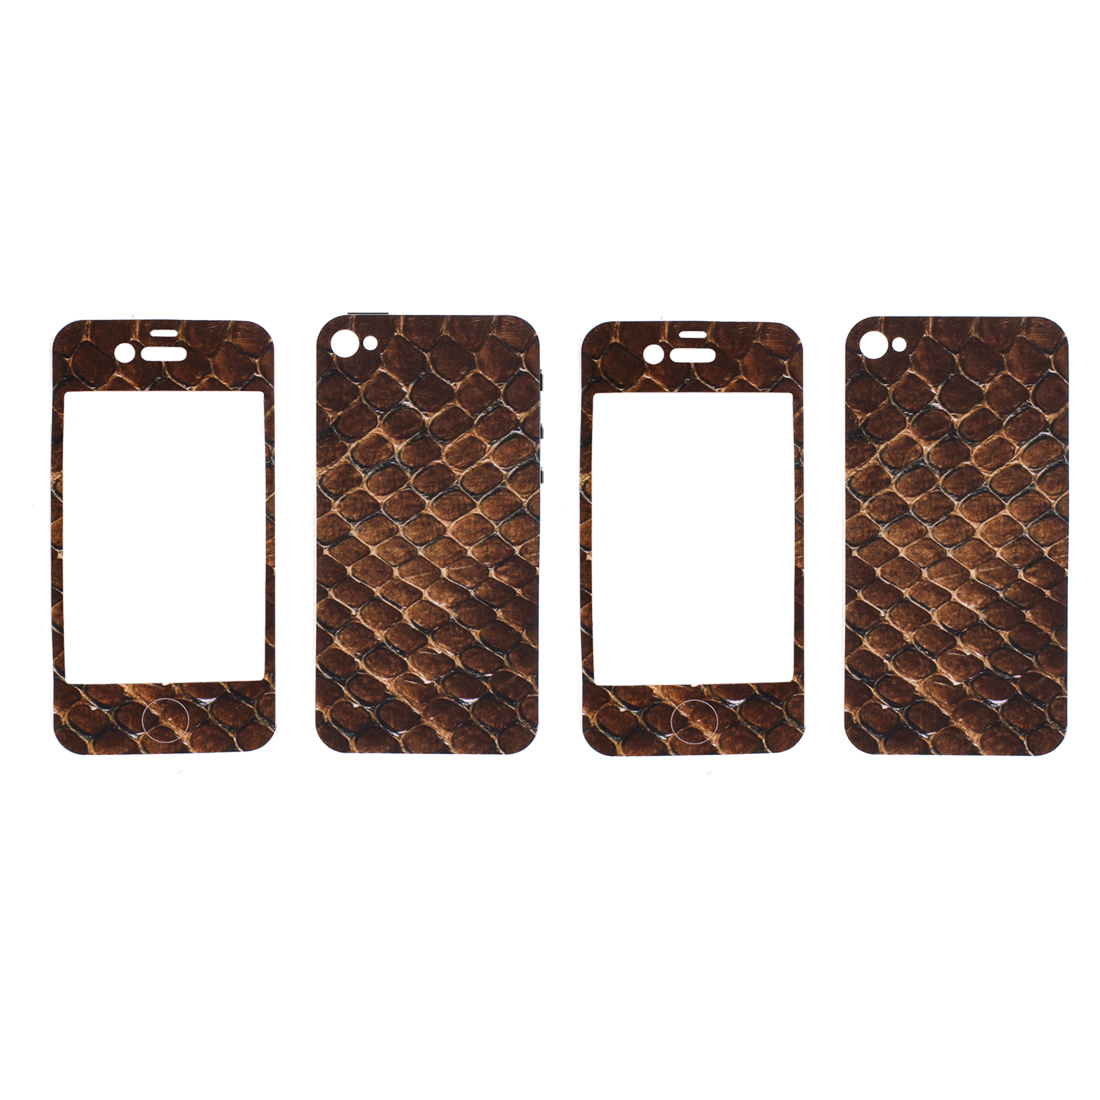 2 Pcs Brown Crocodile Pattern Front Back Sticker Cover Protector for iPhone 4 4G 4S 4GS